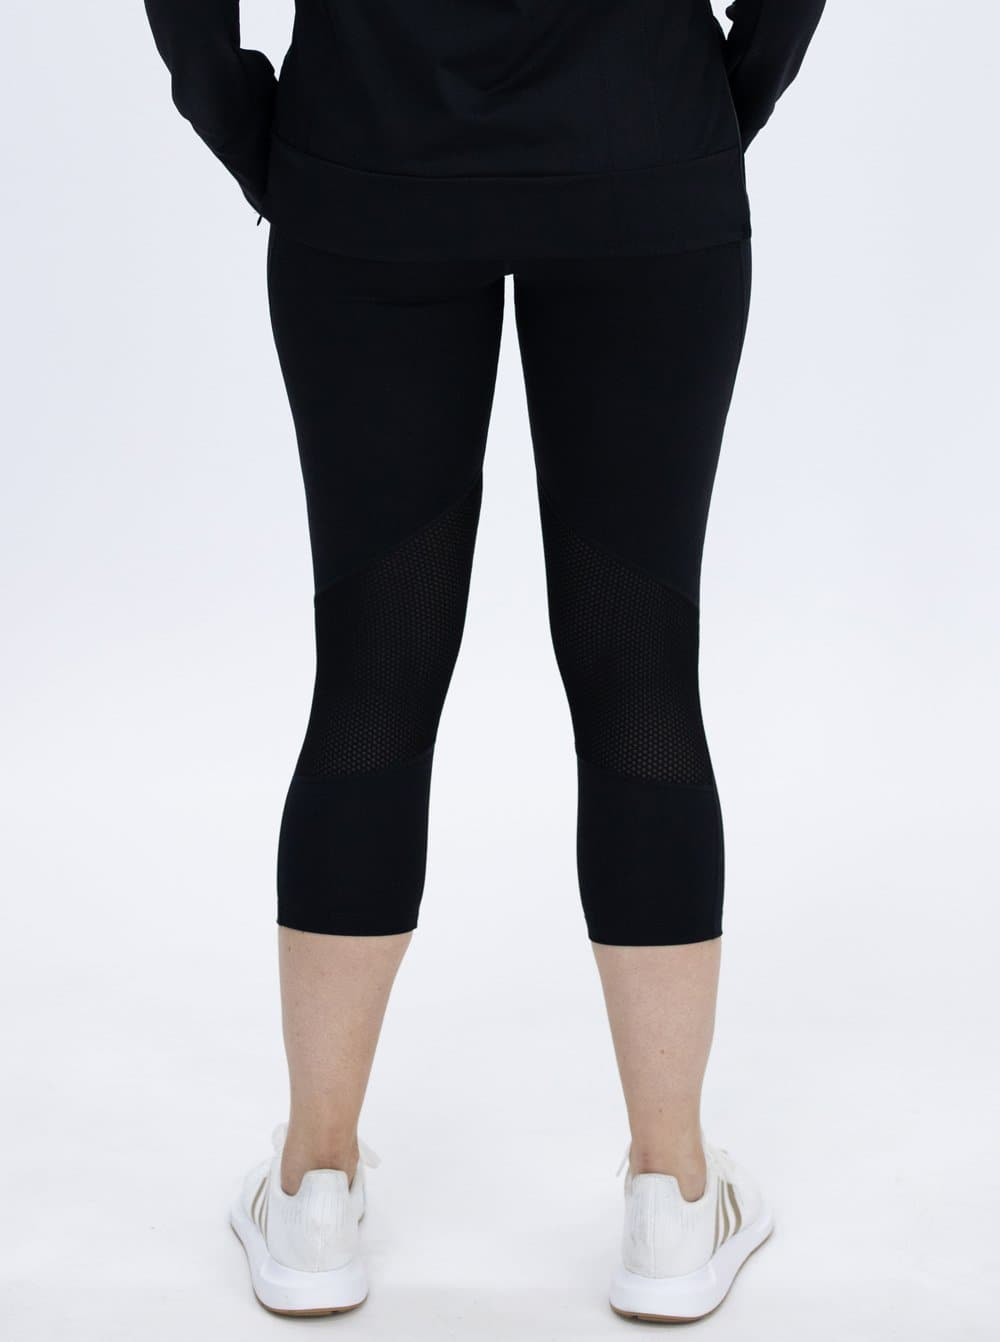 Maternity Workout Tight 3/4 Length Legging - Black